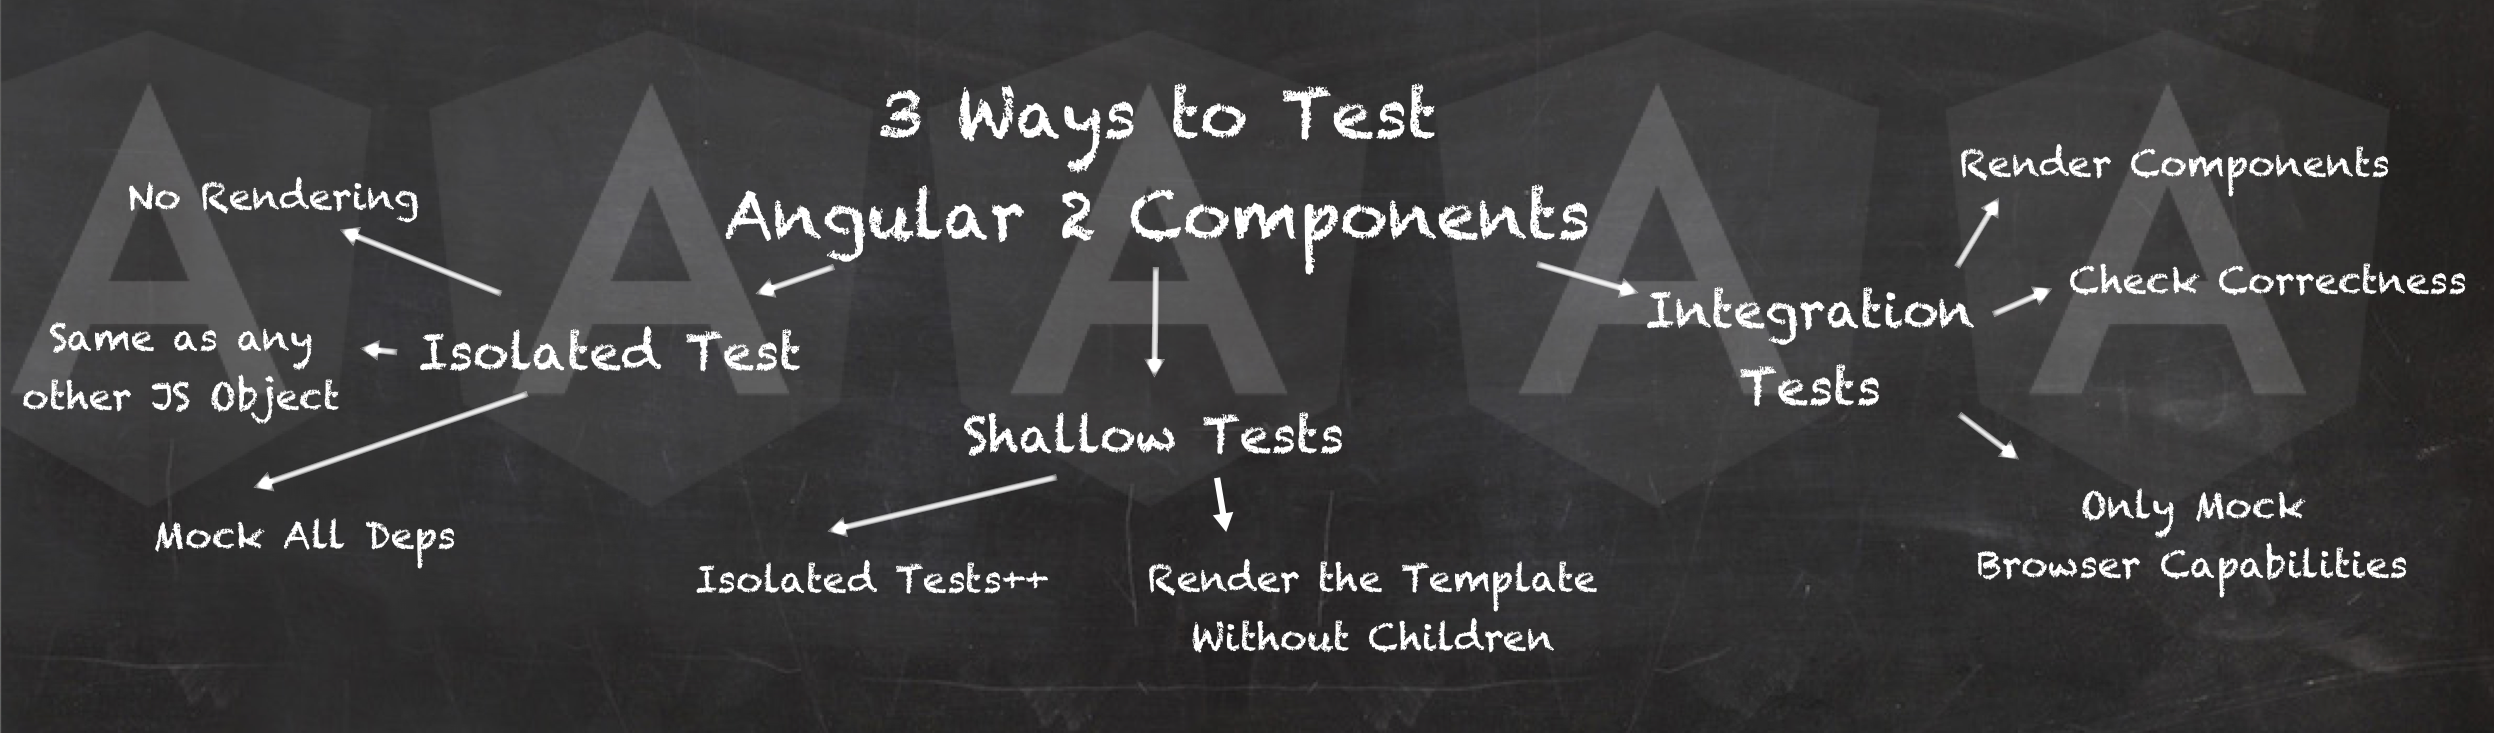 Three Ways to Test Angular Components - Angular